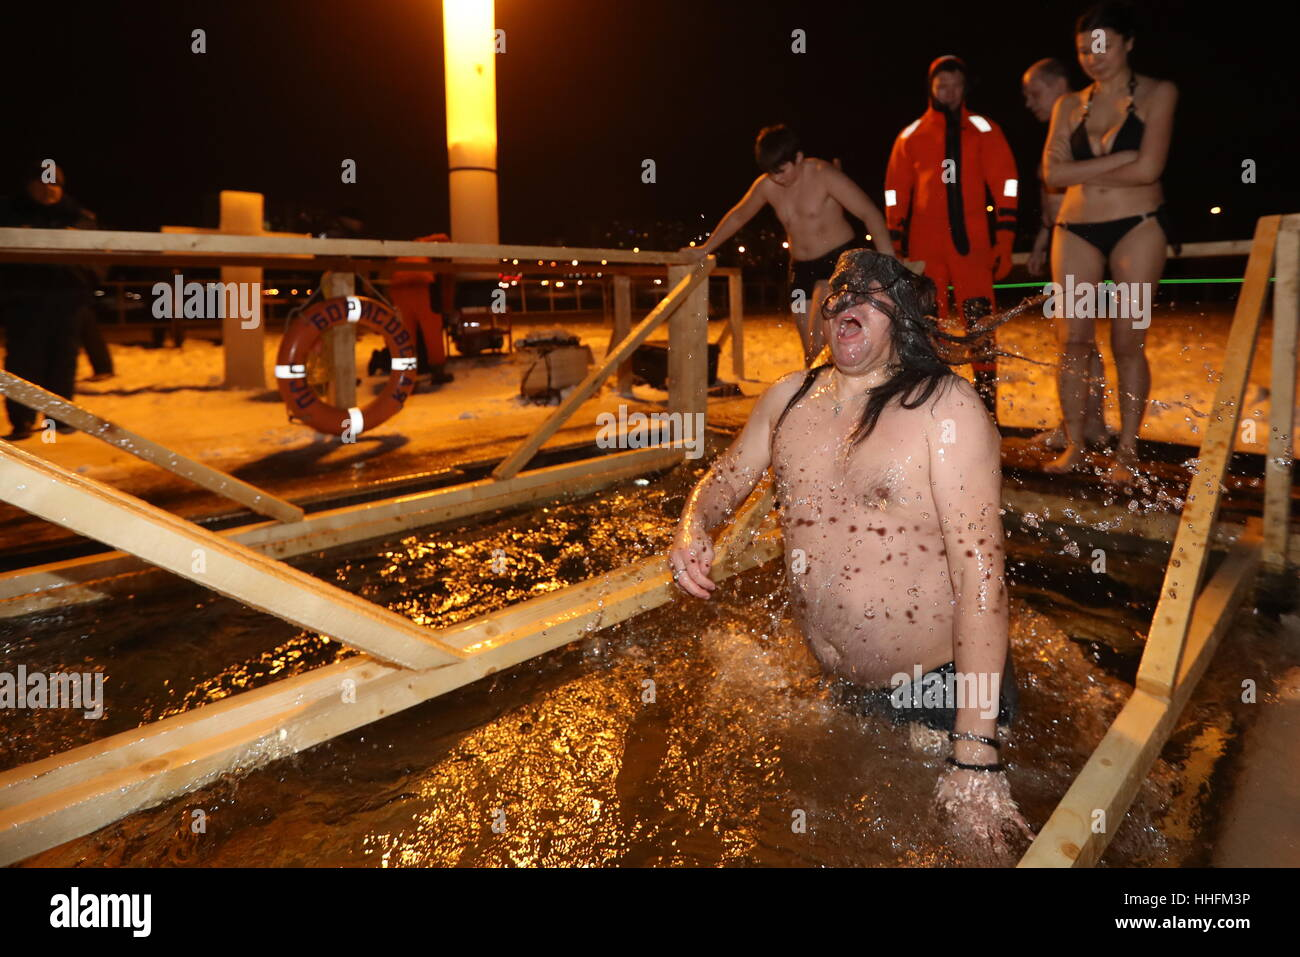 Moscow, Russia. 18th Jan, 2017. A man dips in the icy waters of the Borisovo Ponds during Epiphany celebrations. - Stock Image